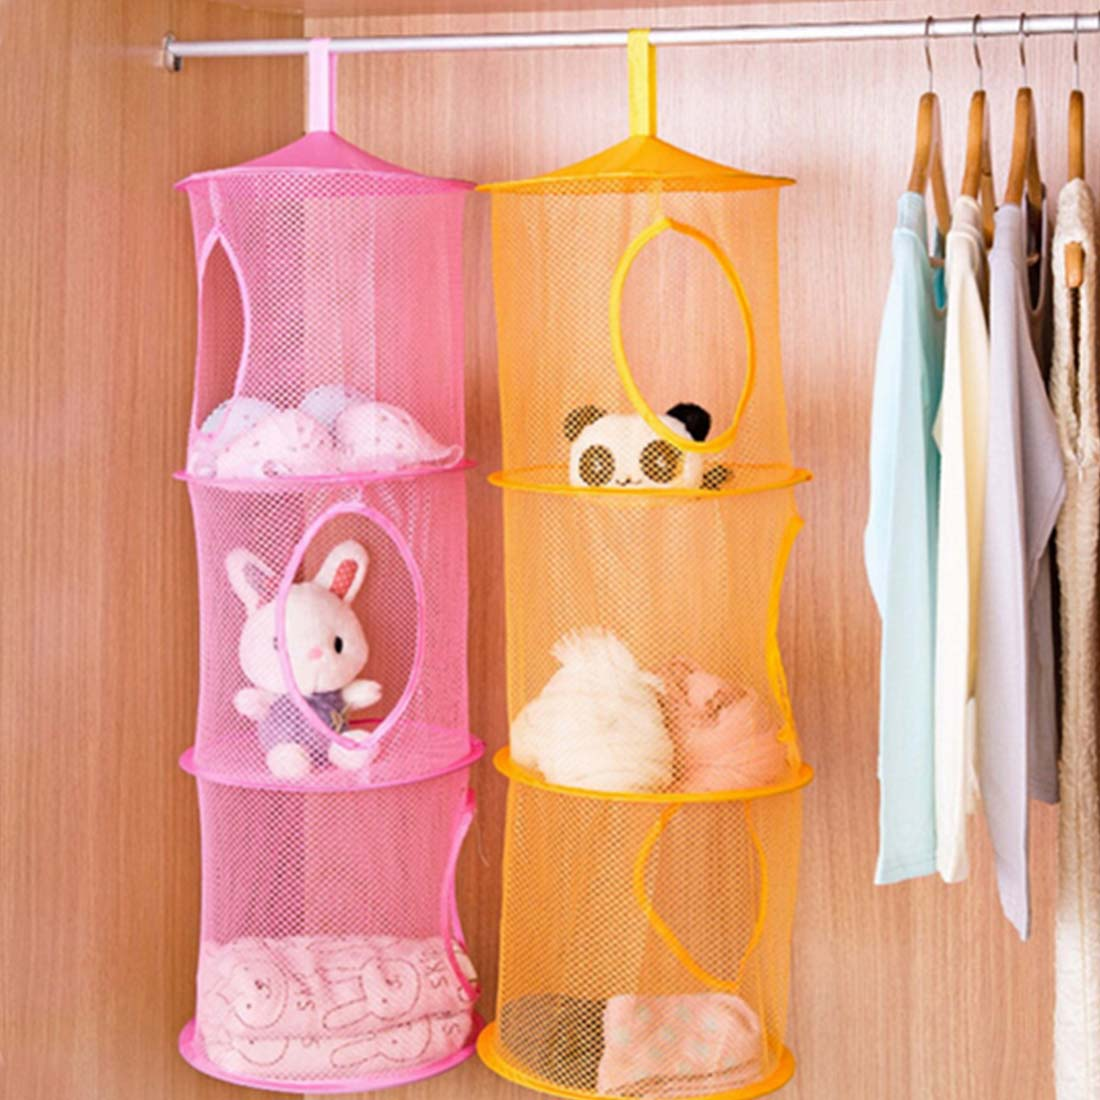 Hanging Bags 3 Shelf Hanging Storage Net Kids Toy Pocket Pouch Bag Bedroom Wall Door Closet Clothes Storage Rack Hangers(China (Mainland))